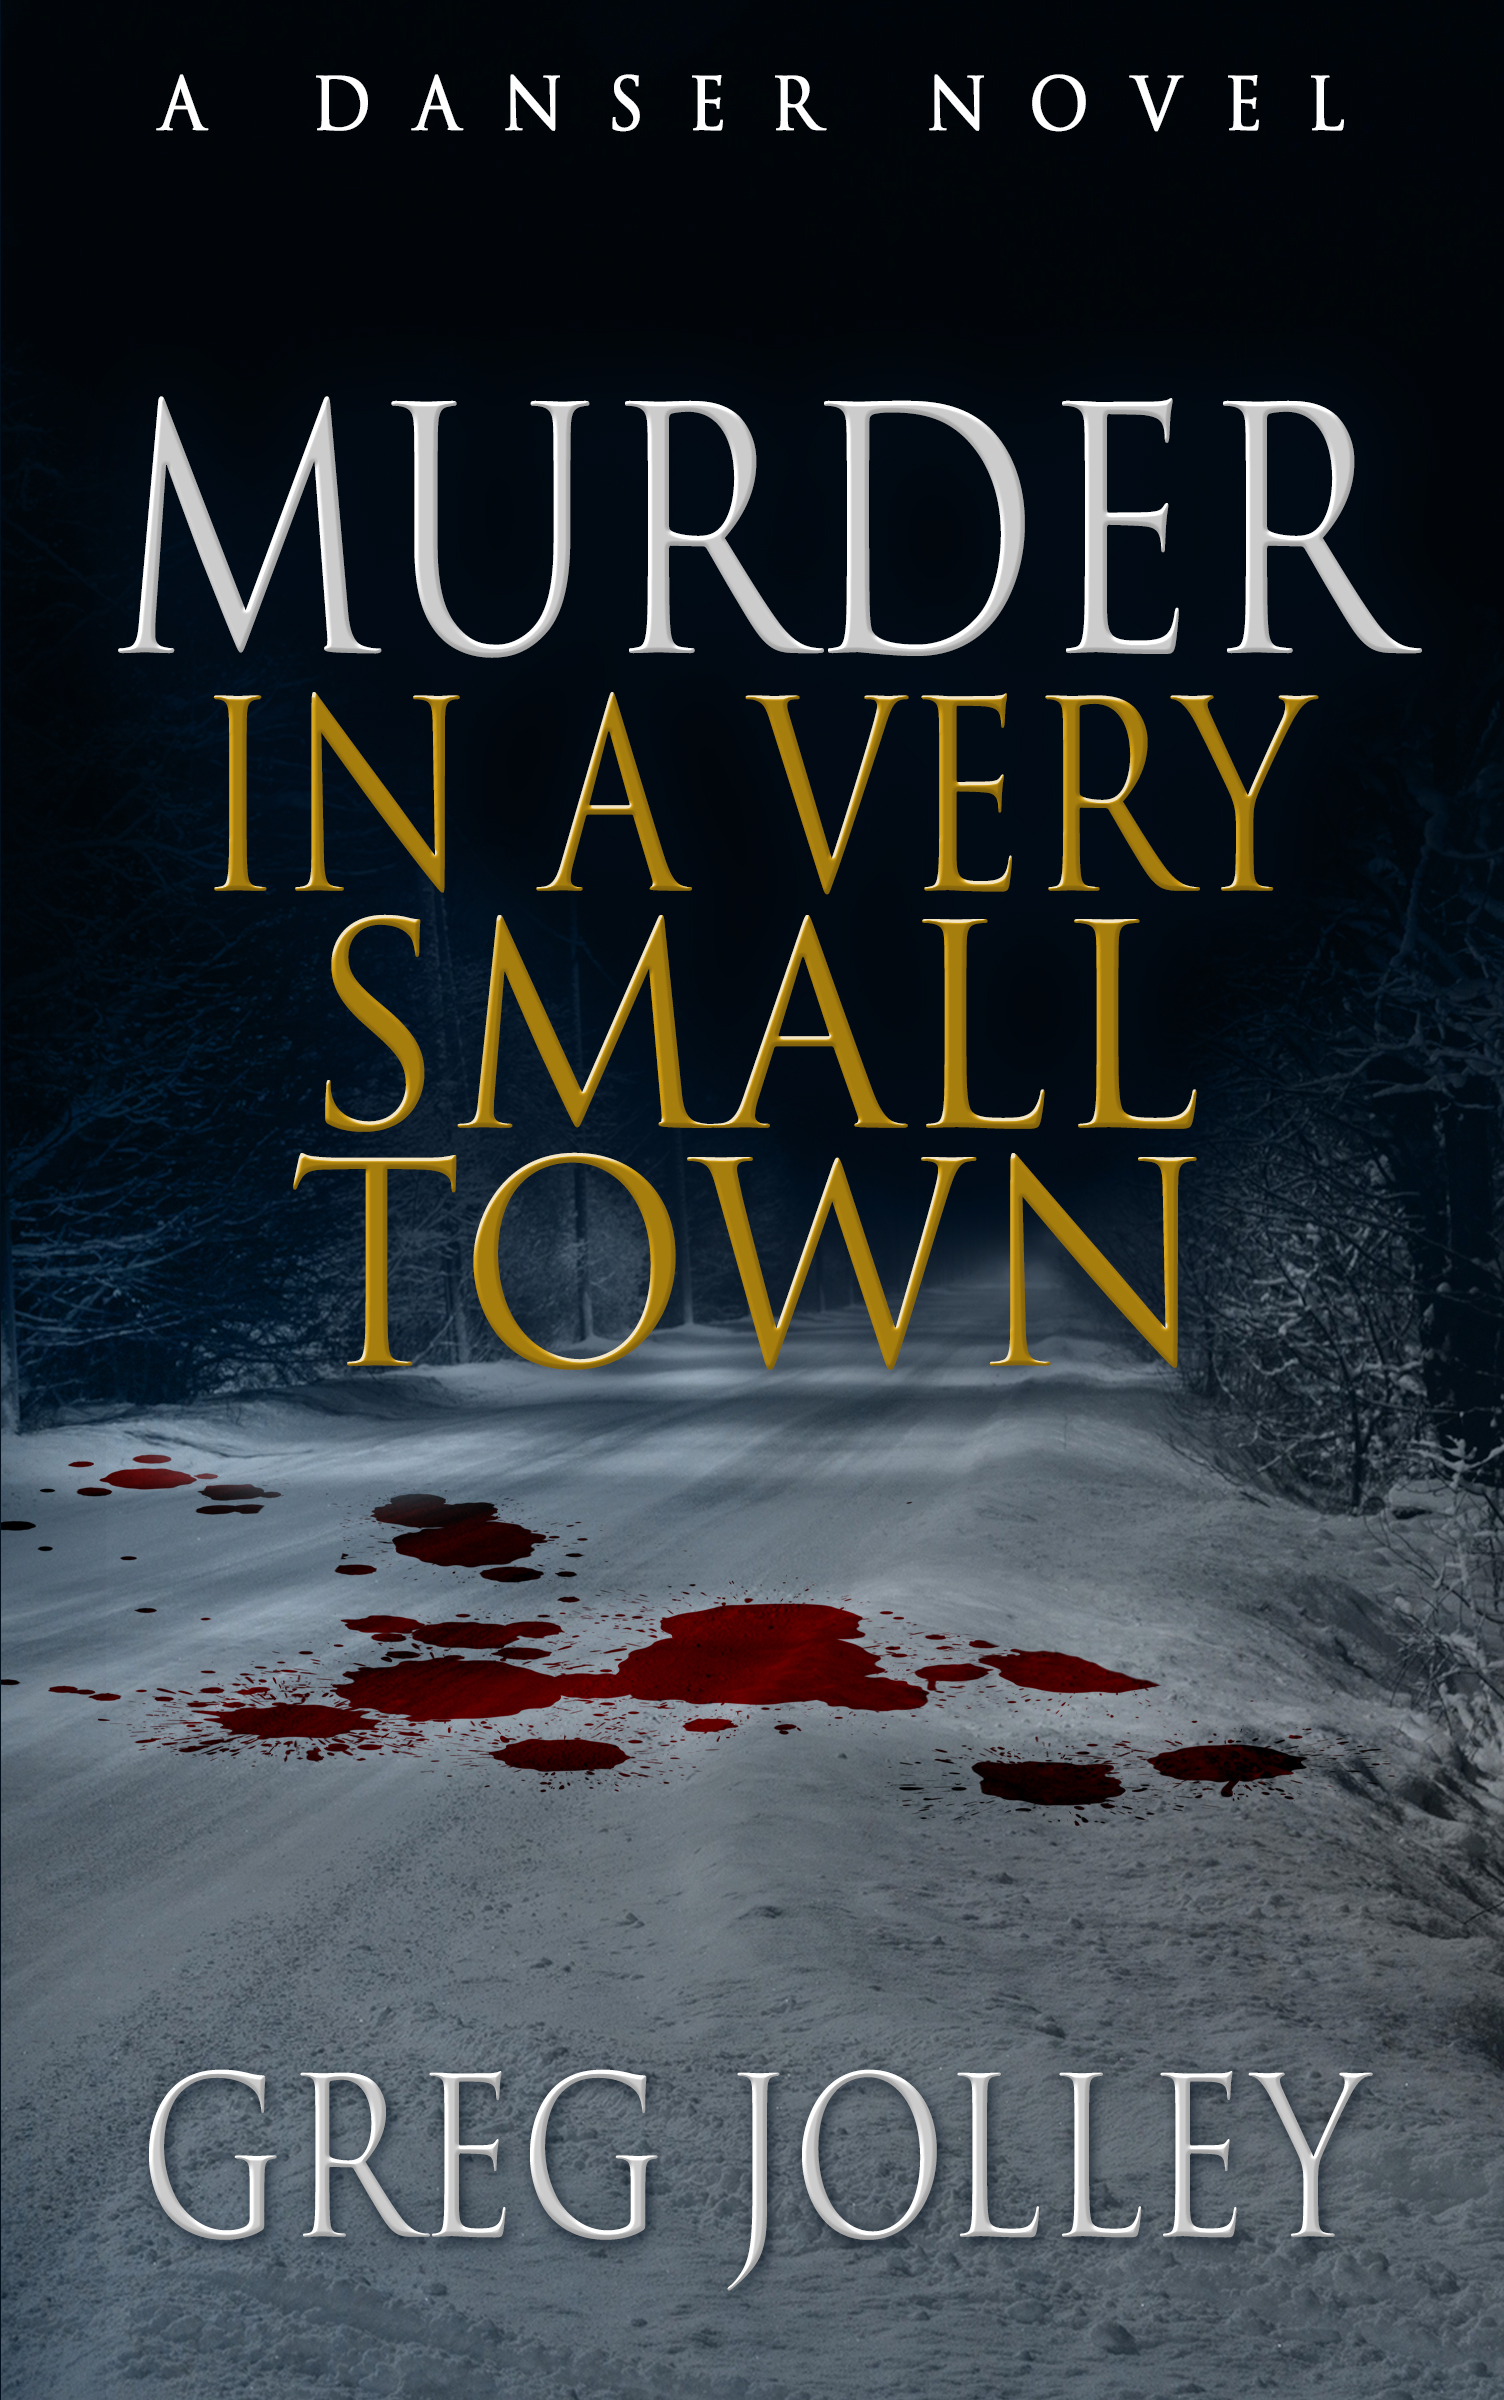 MURDER IN A VERY SMALL TOWN - GREG JOLLEY - BISON PUBLISHING